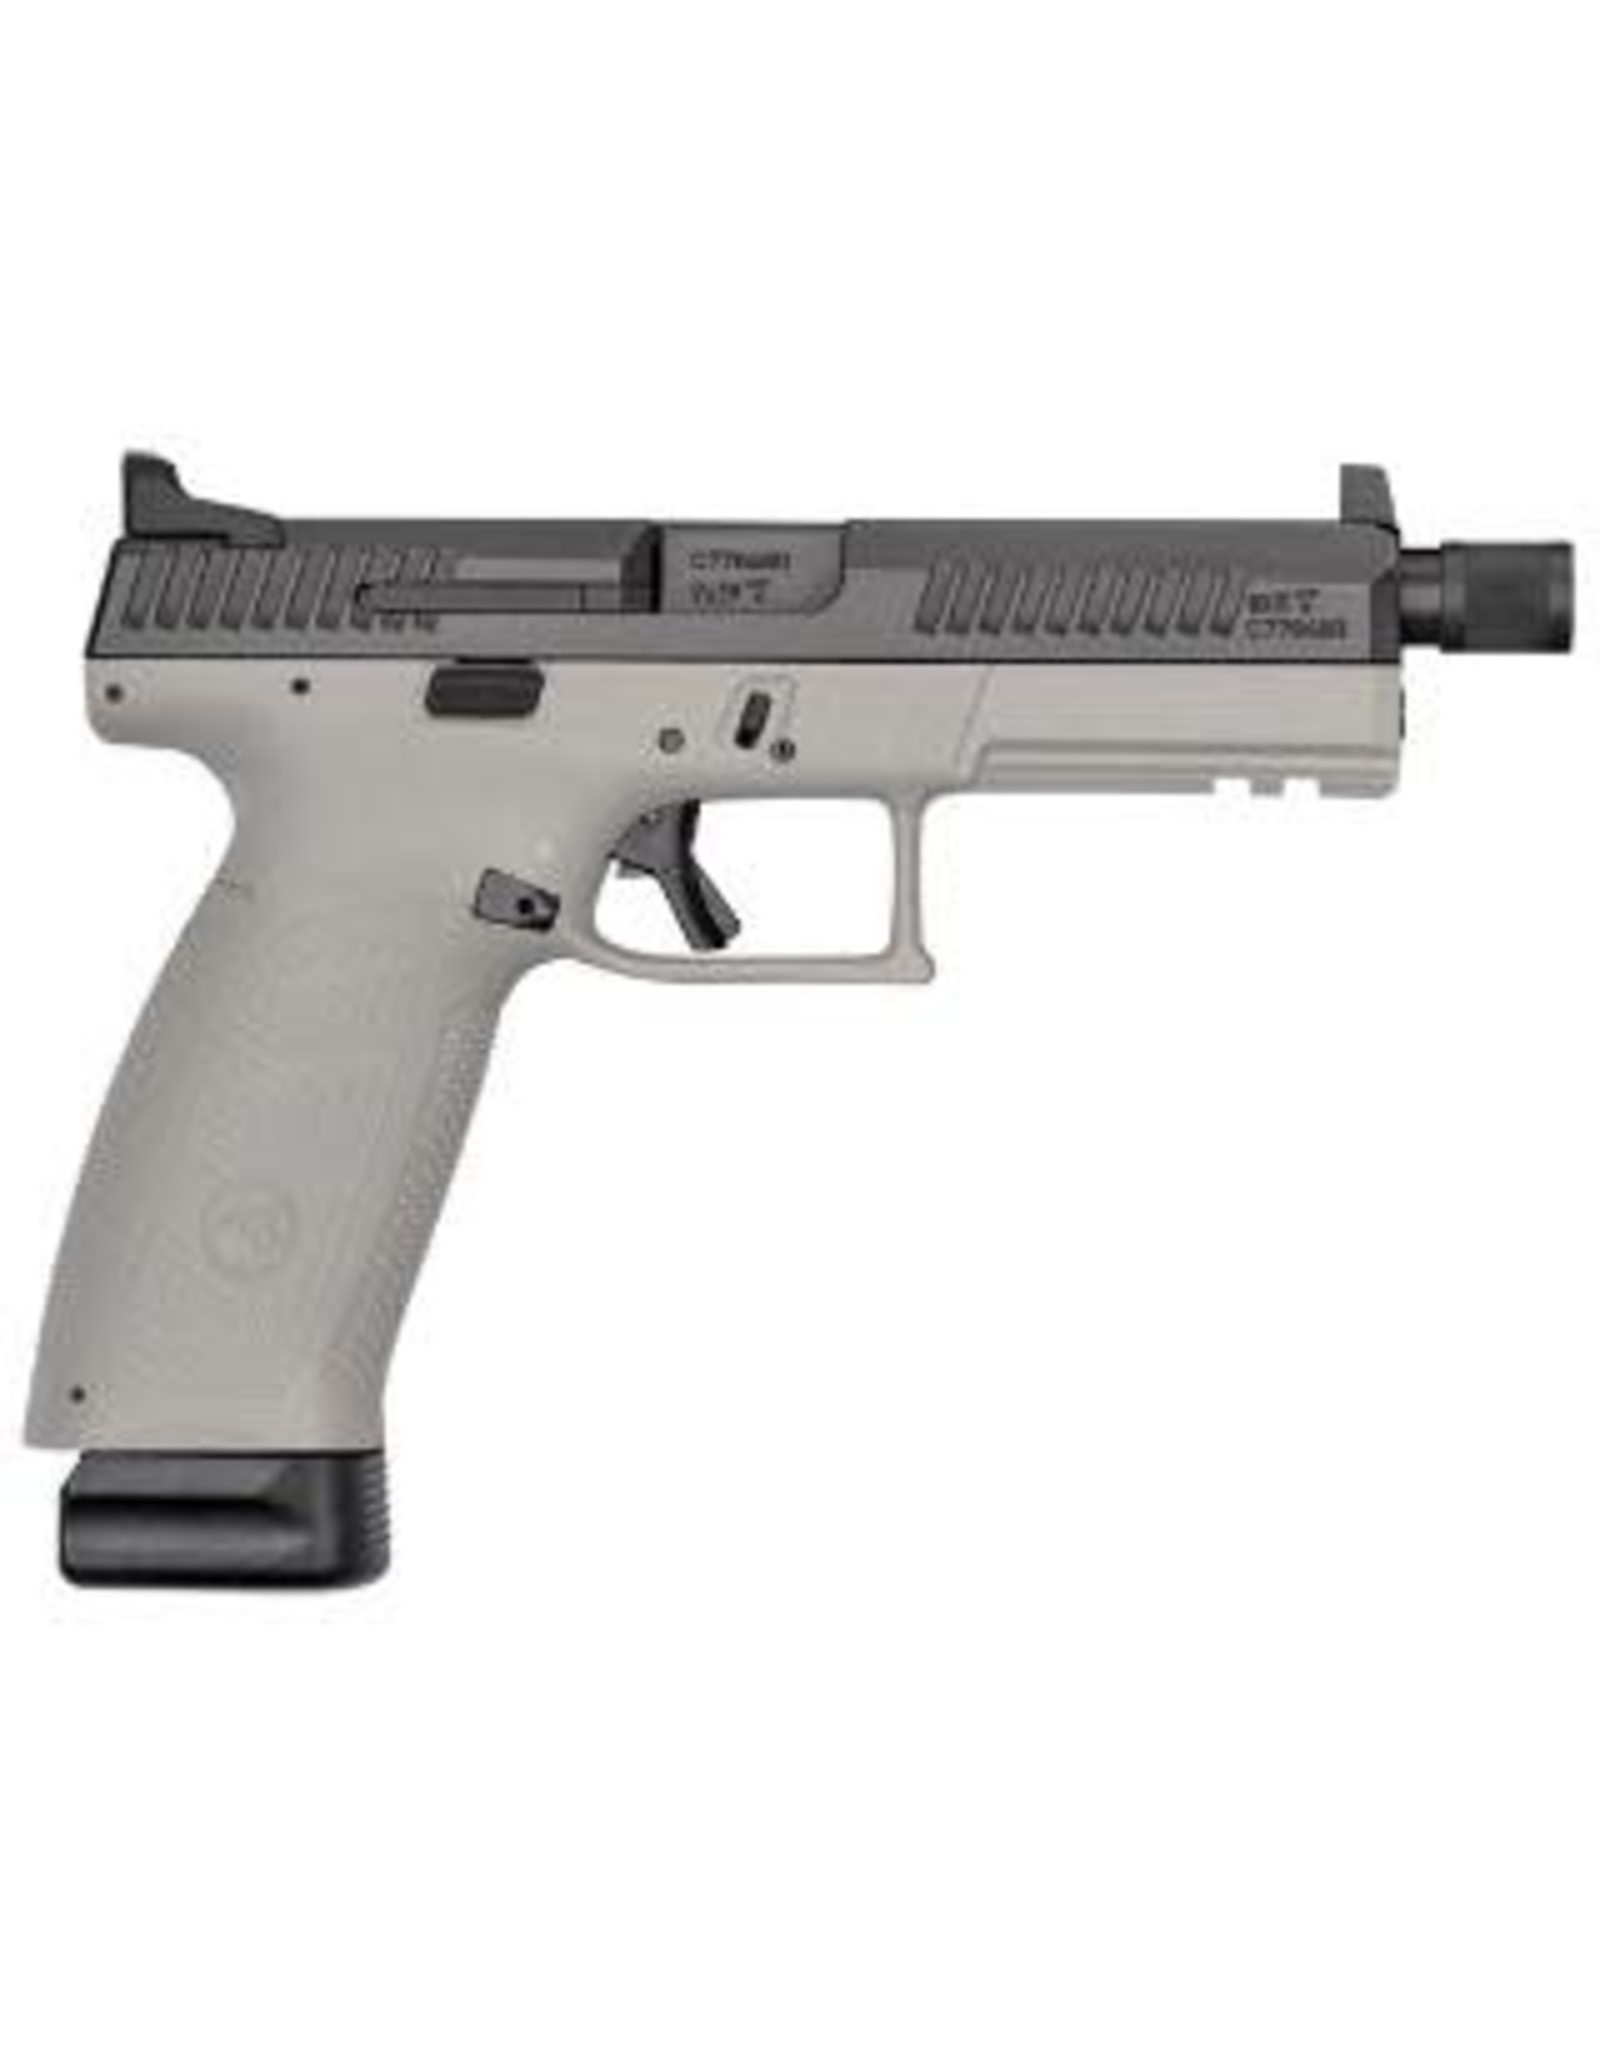 "CZ P-10 F 9mm Urban Grey 21+1 Round 5"" bbl"